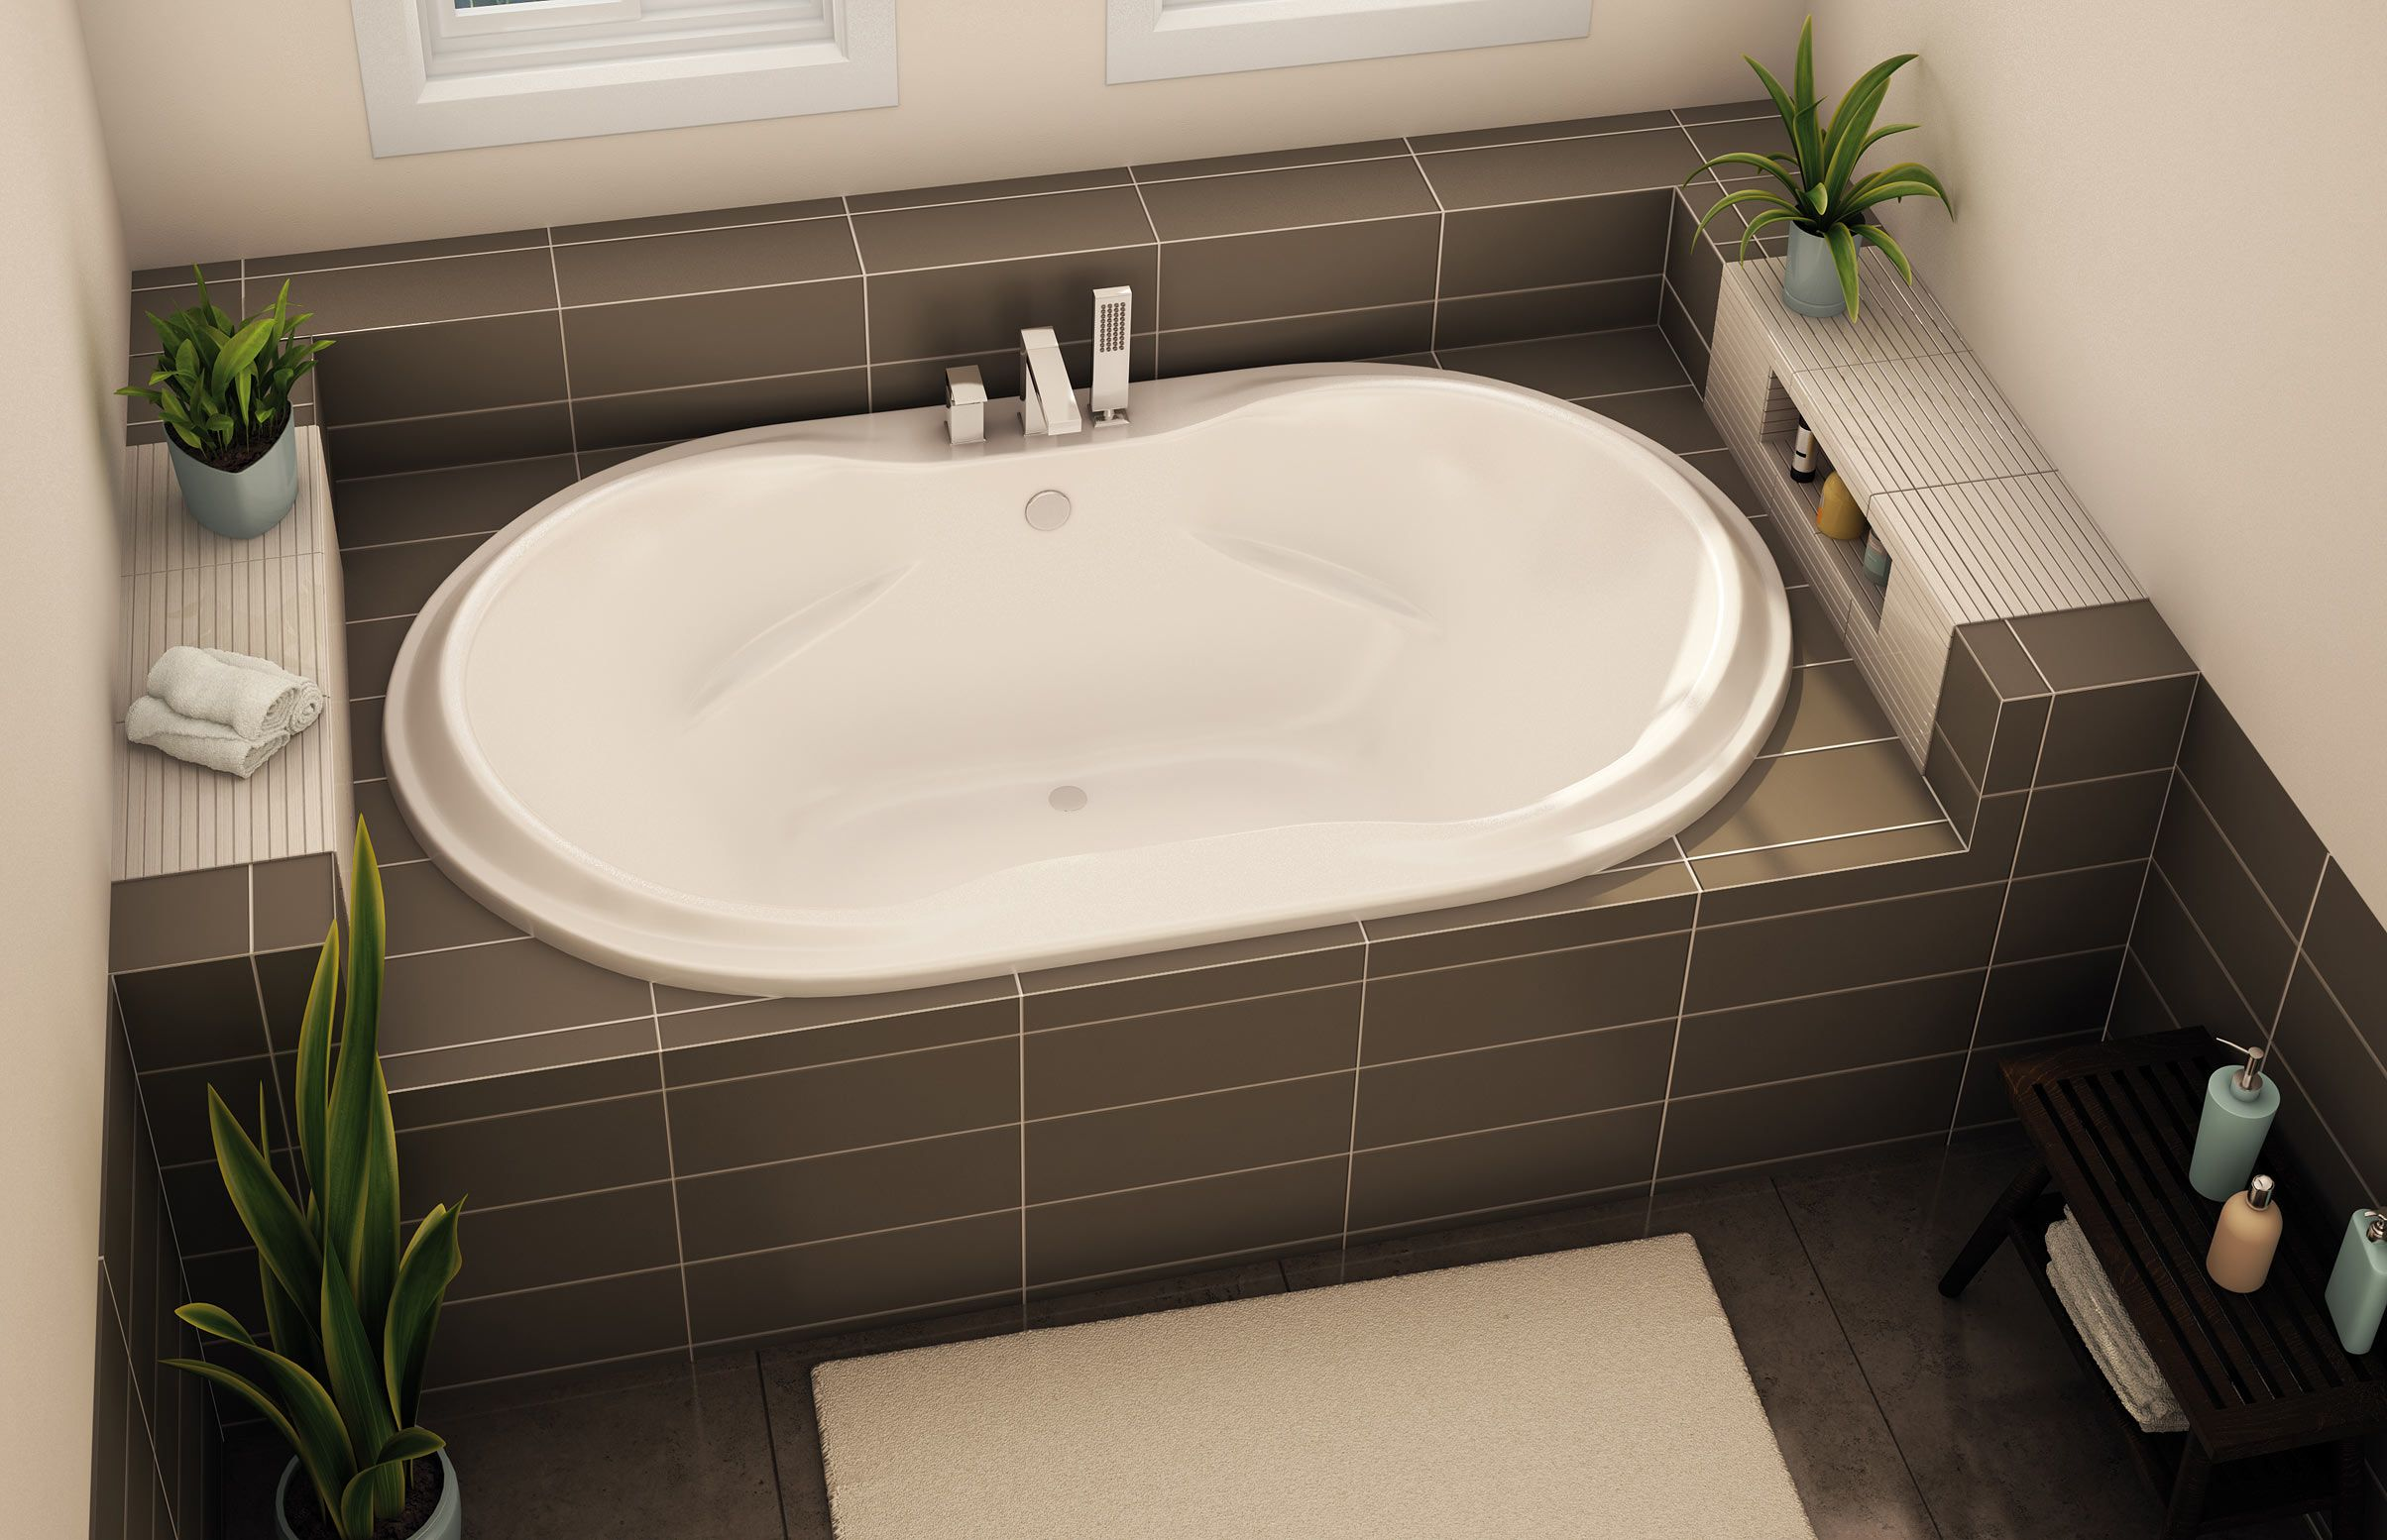 Bon Oval Tub With Tap On Side, As Drop In With Tile Surround.